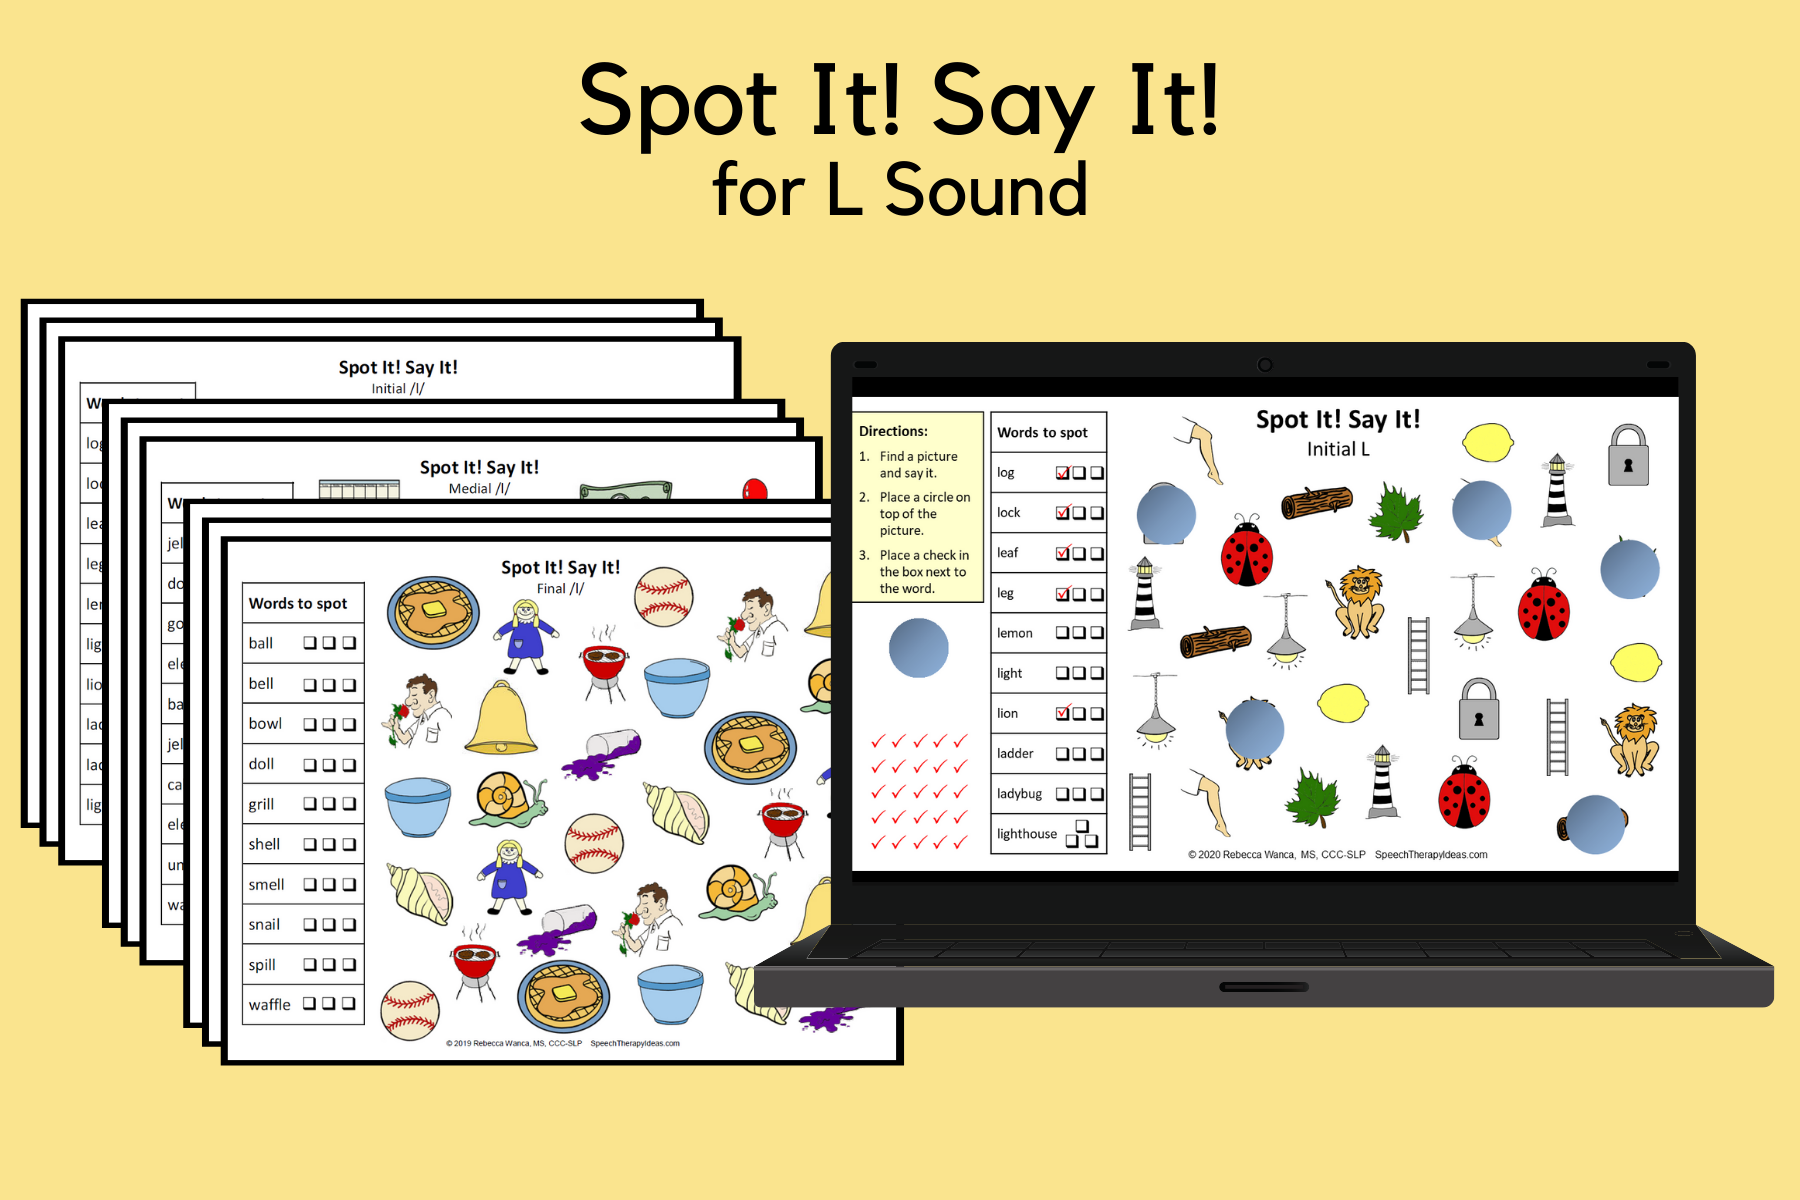 Spot It! Say It! Pages for L Sound